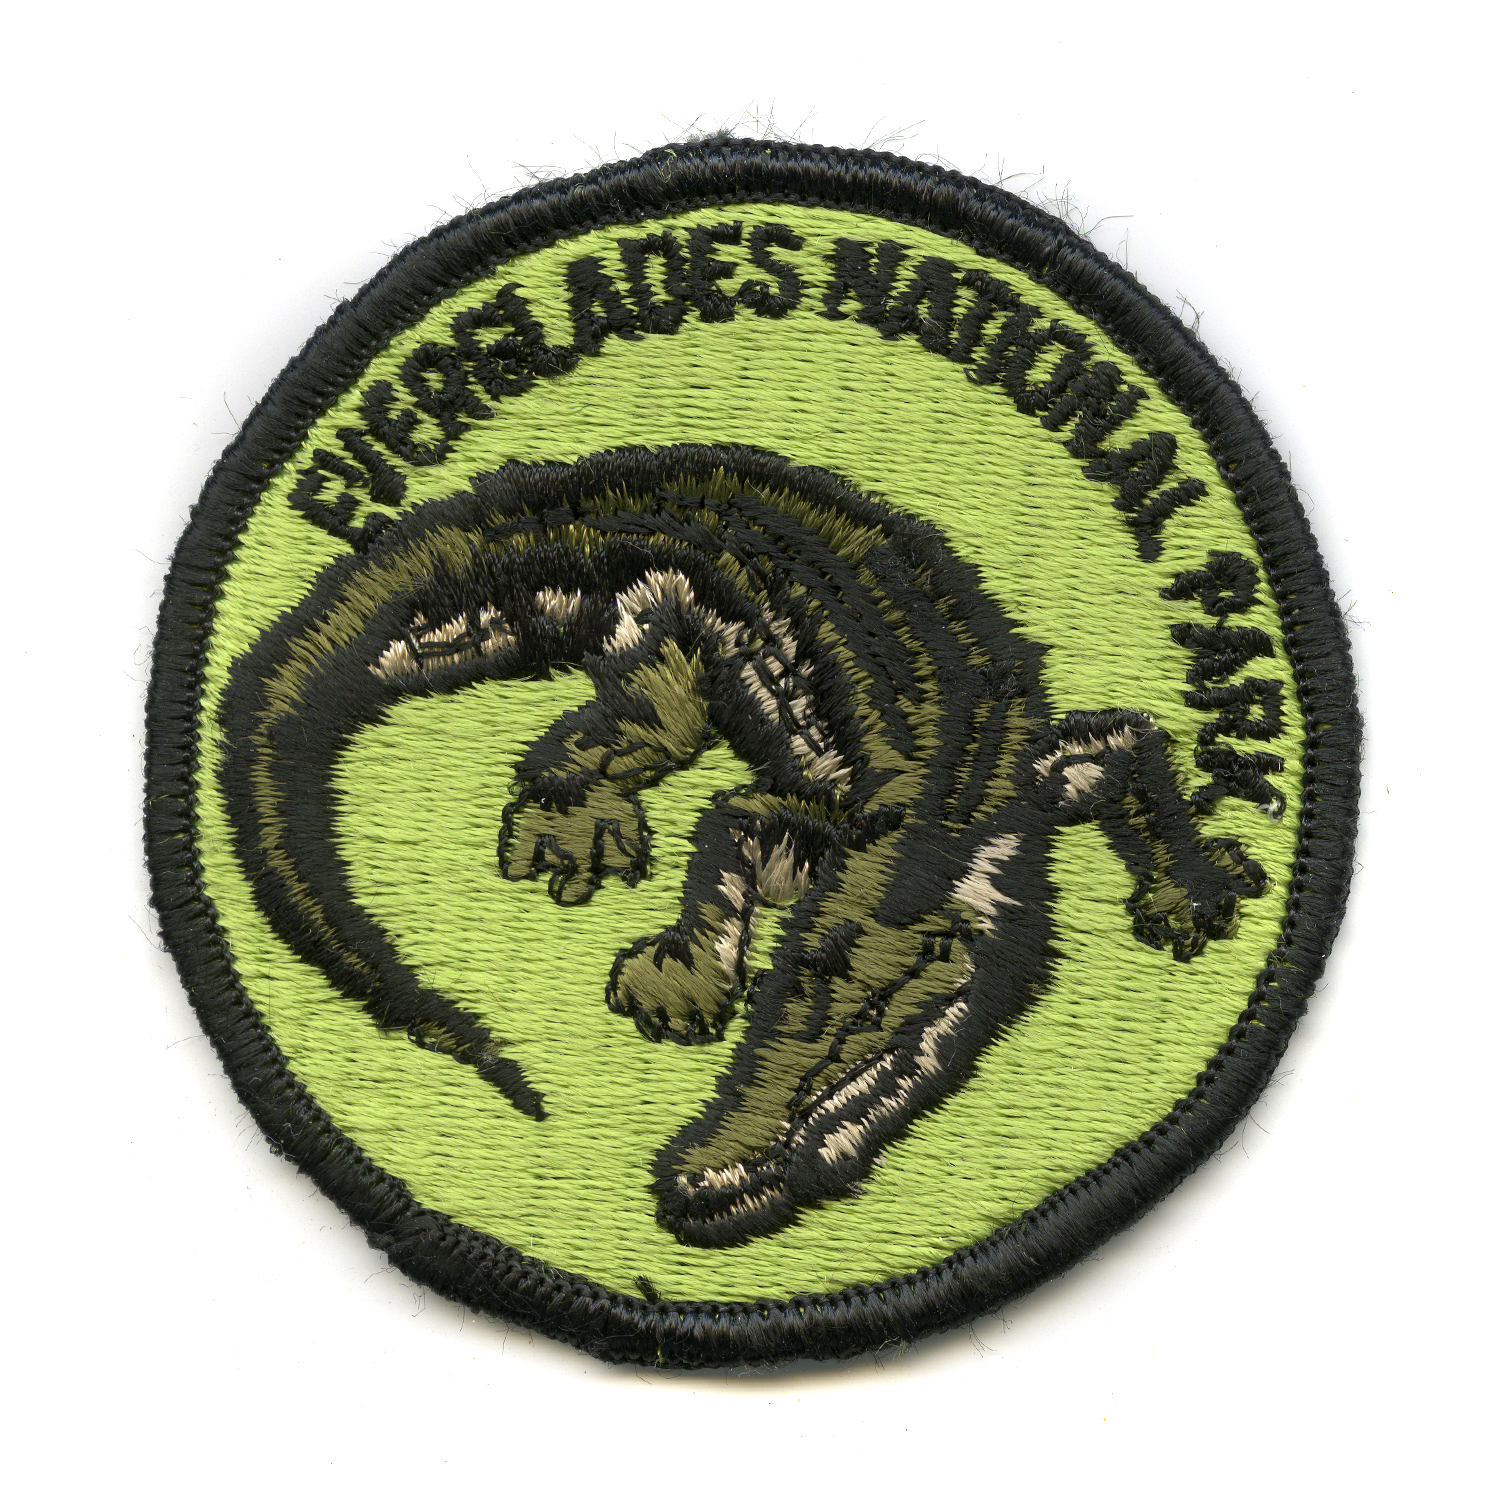 nps_patch_project_everglades_national_park_service_patch_1.jpg